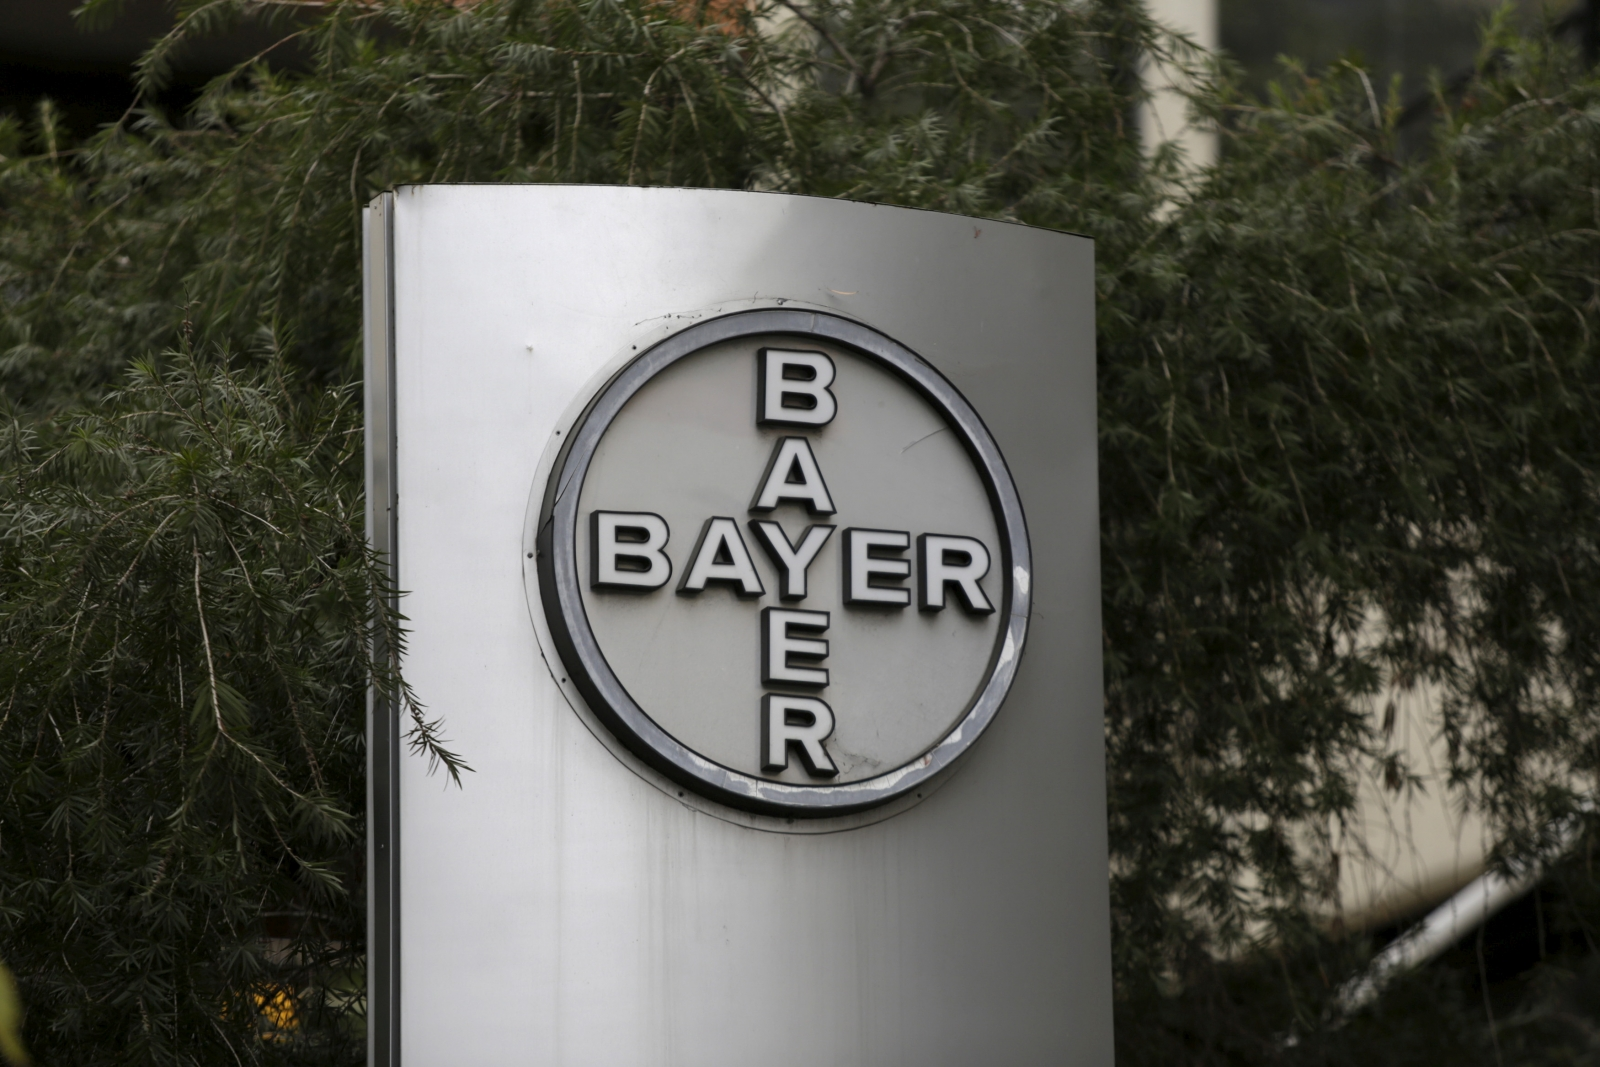 German chemicals giant Bayer poised to acquire US seed maker Monsanto for about $66bn